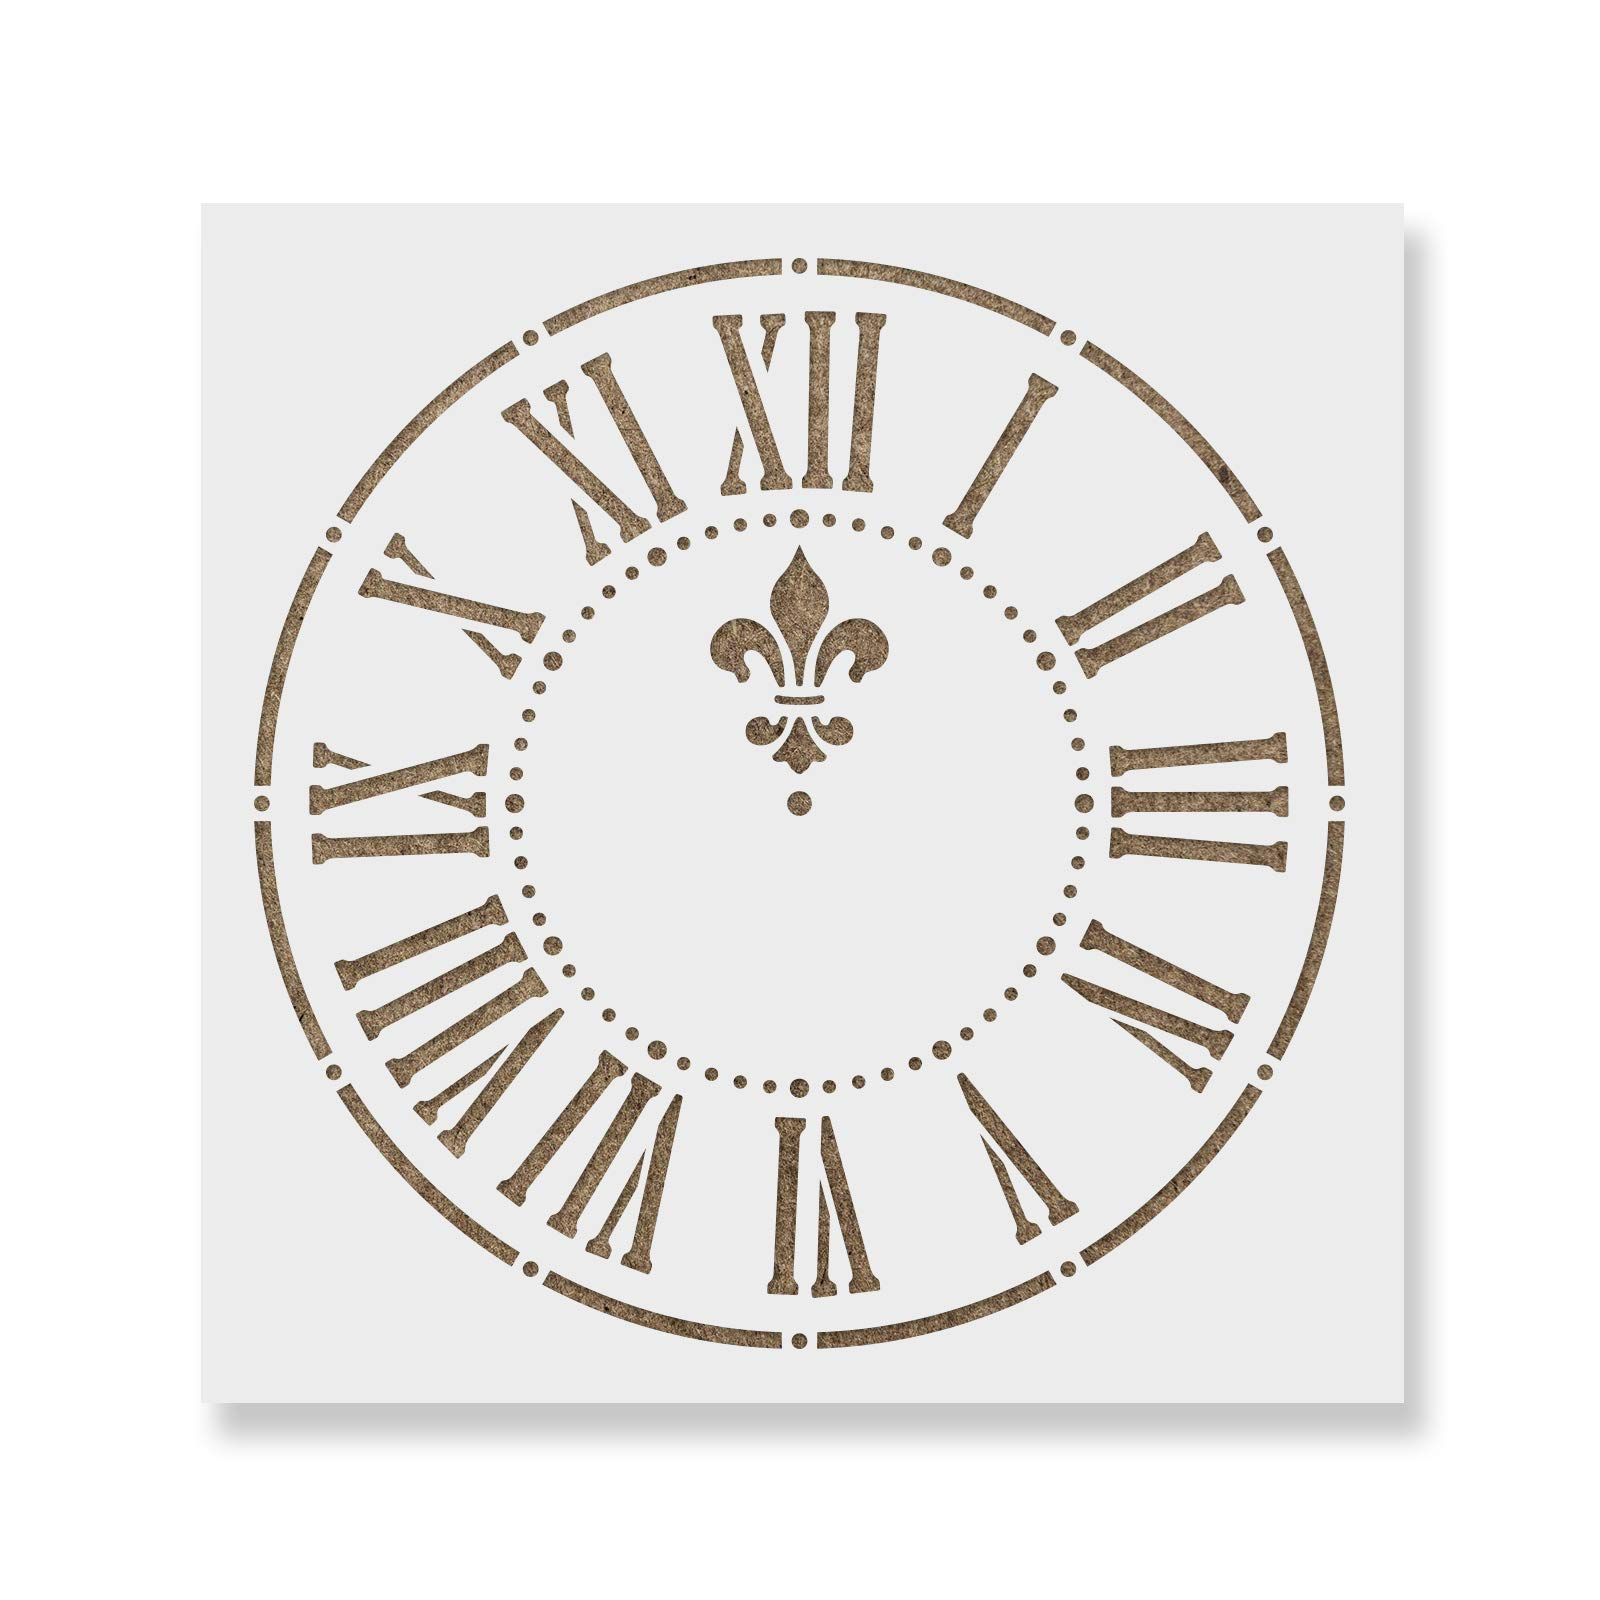 Clock Stencil Template - Reusable Stencil with Multiple Sizes Available